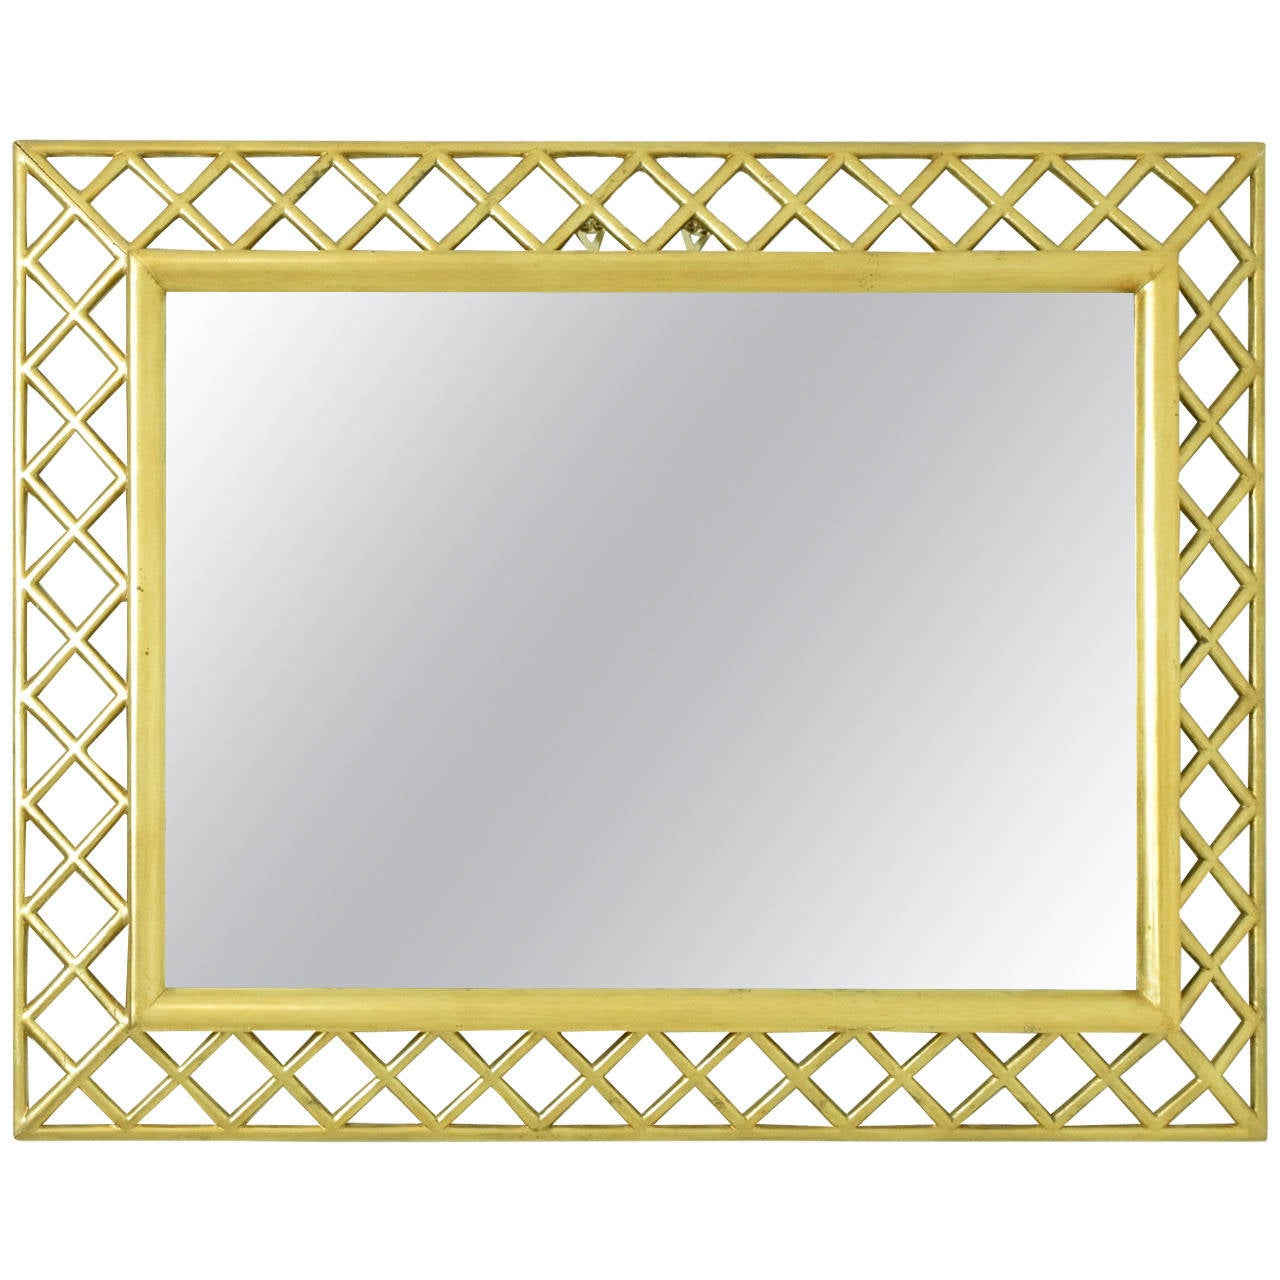 Italian Giltwood Lattice Frame Mirror